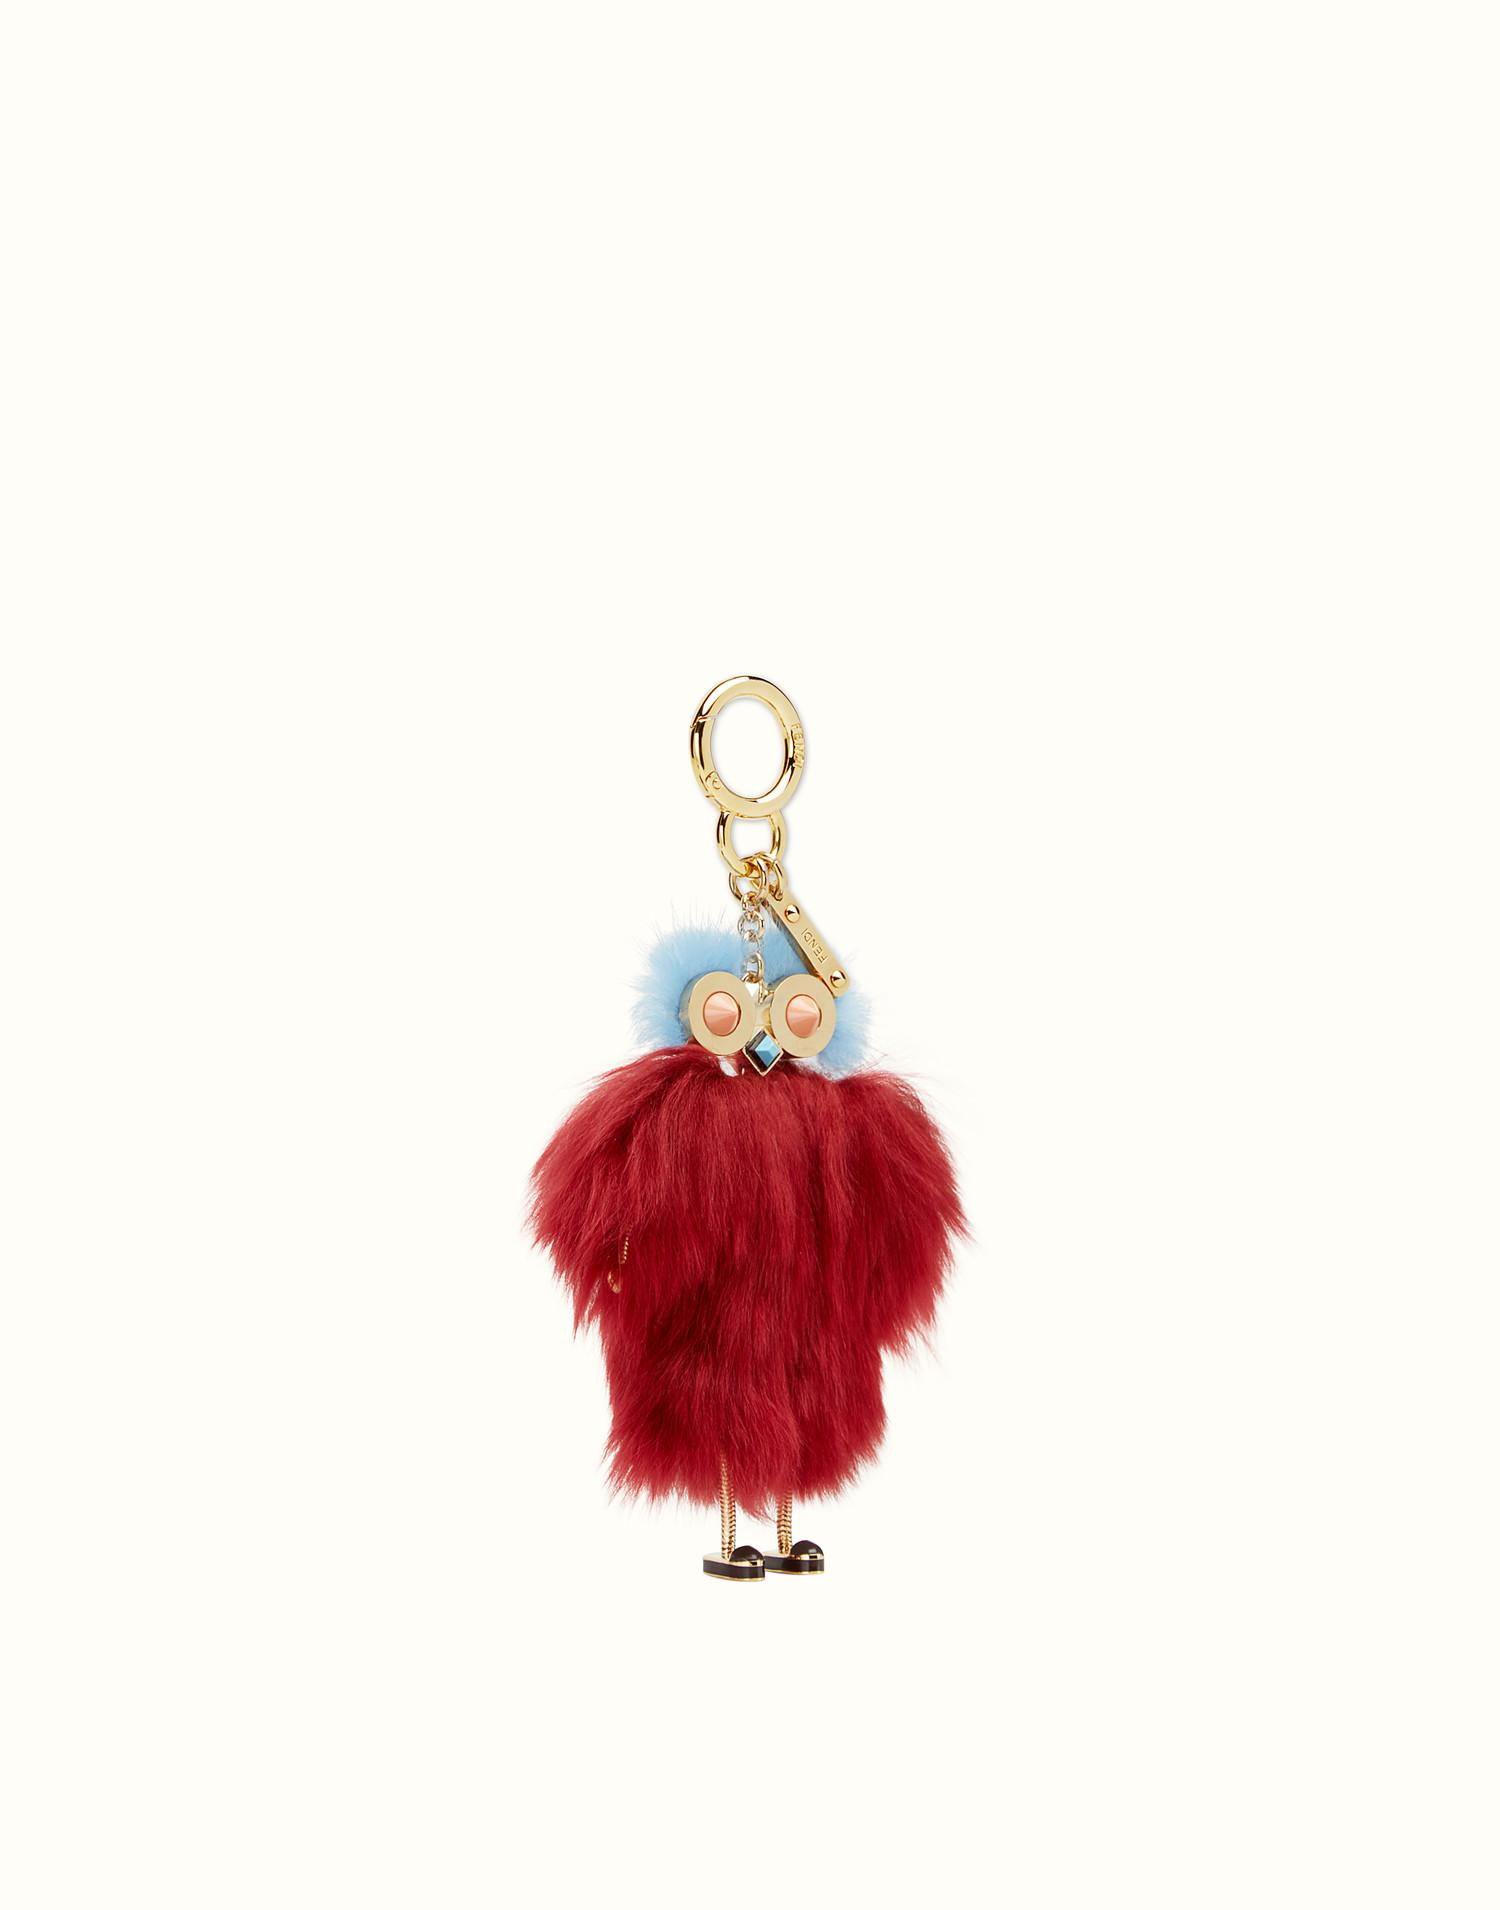 Witches charm - Red Fendi ogprm